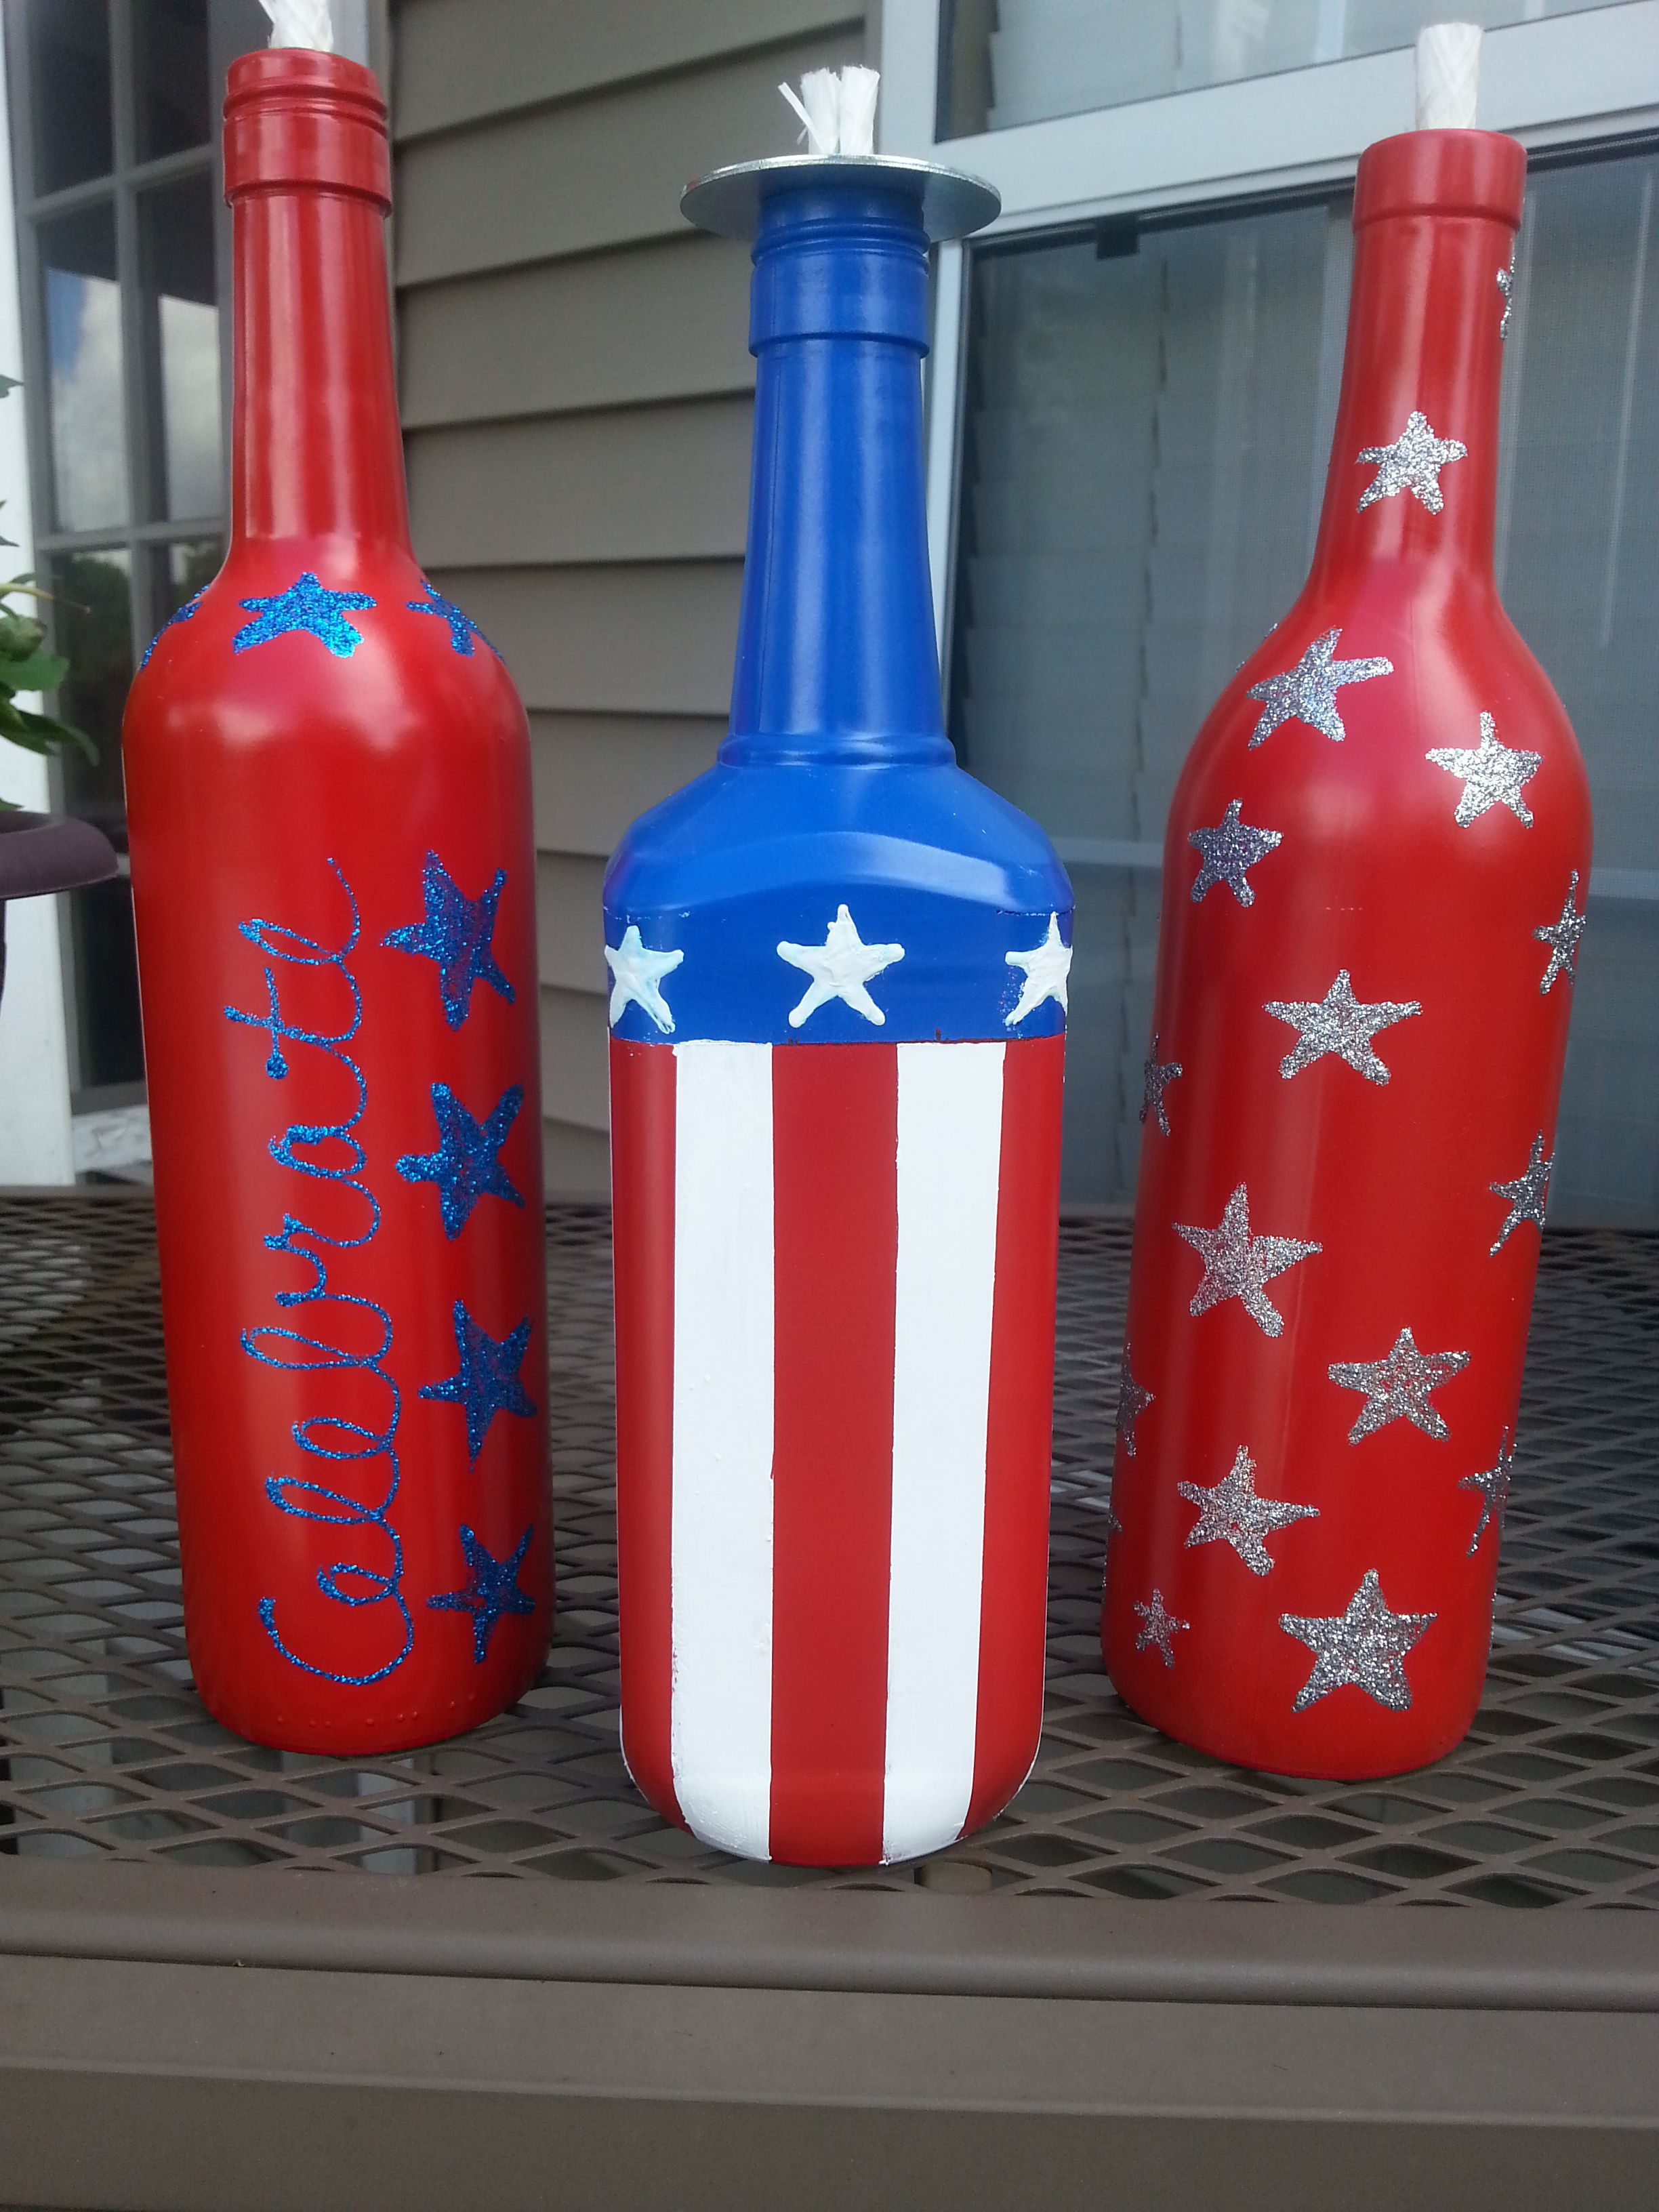 Pin By Linda Oliver On Painted Wine Bottles Painted Wine Bottles Wine Bottle Crafts Glass Bottle Crafts